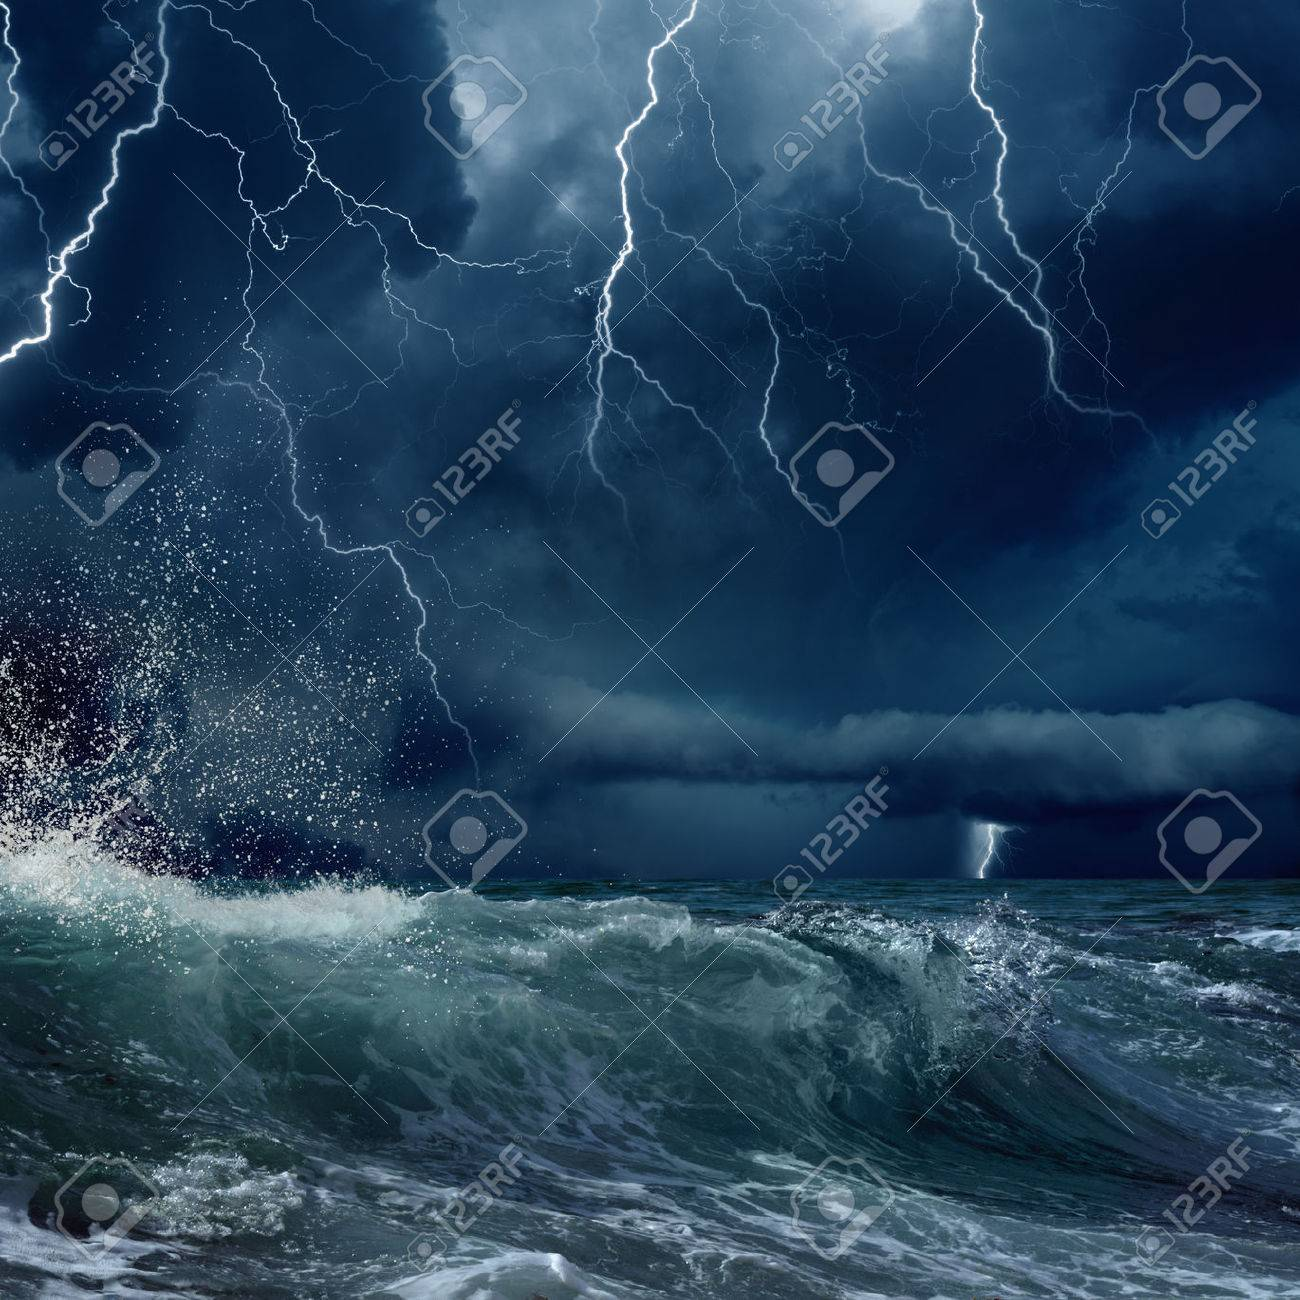 stormy sea, dark clouds with bright lightnings - 35885863